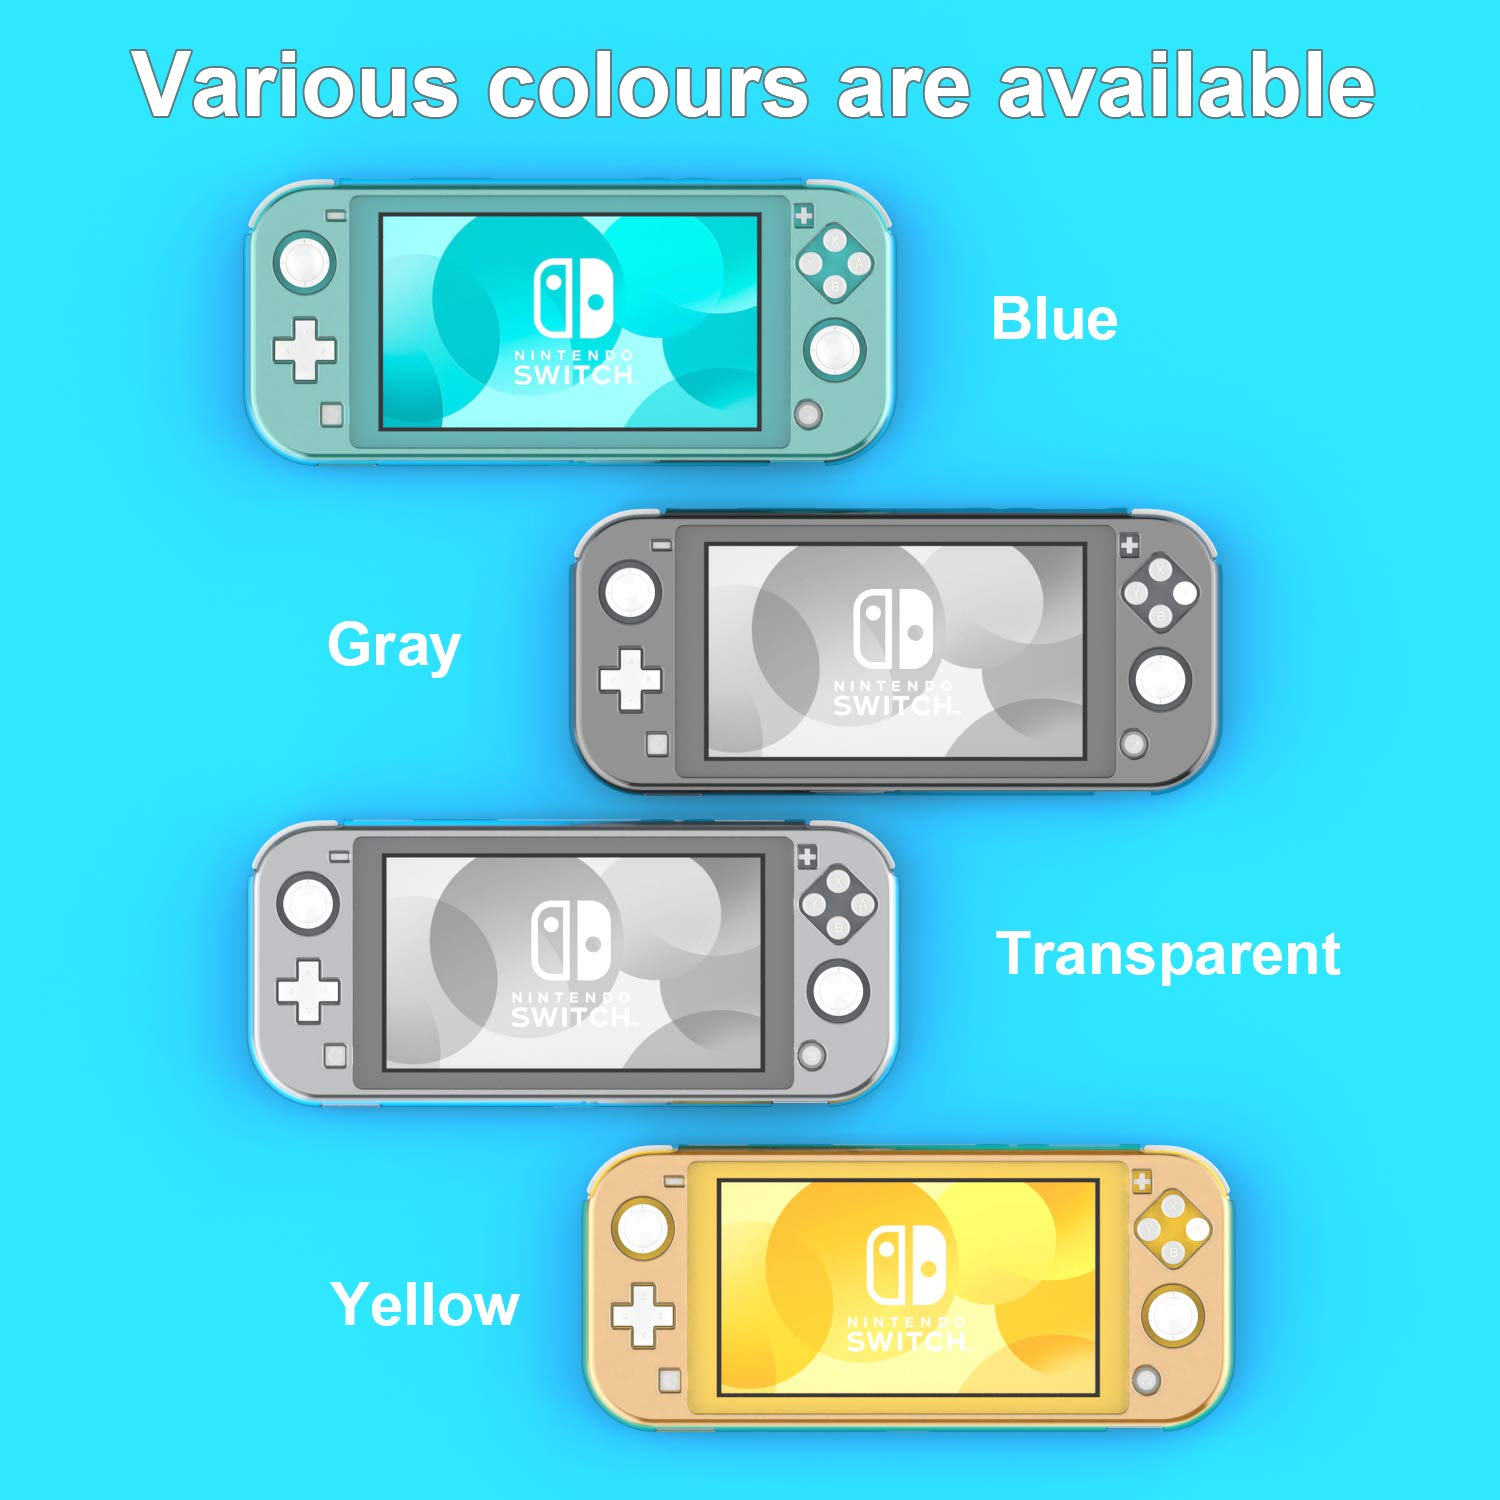 YCCSKY Case Cover for Nintendo Switch Lite 2019, Compact Ultra-Thin All-Round Crystal Protective Cover Case for Switch Lite (Clear Turquoise)